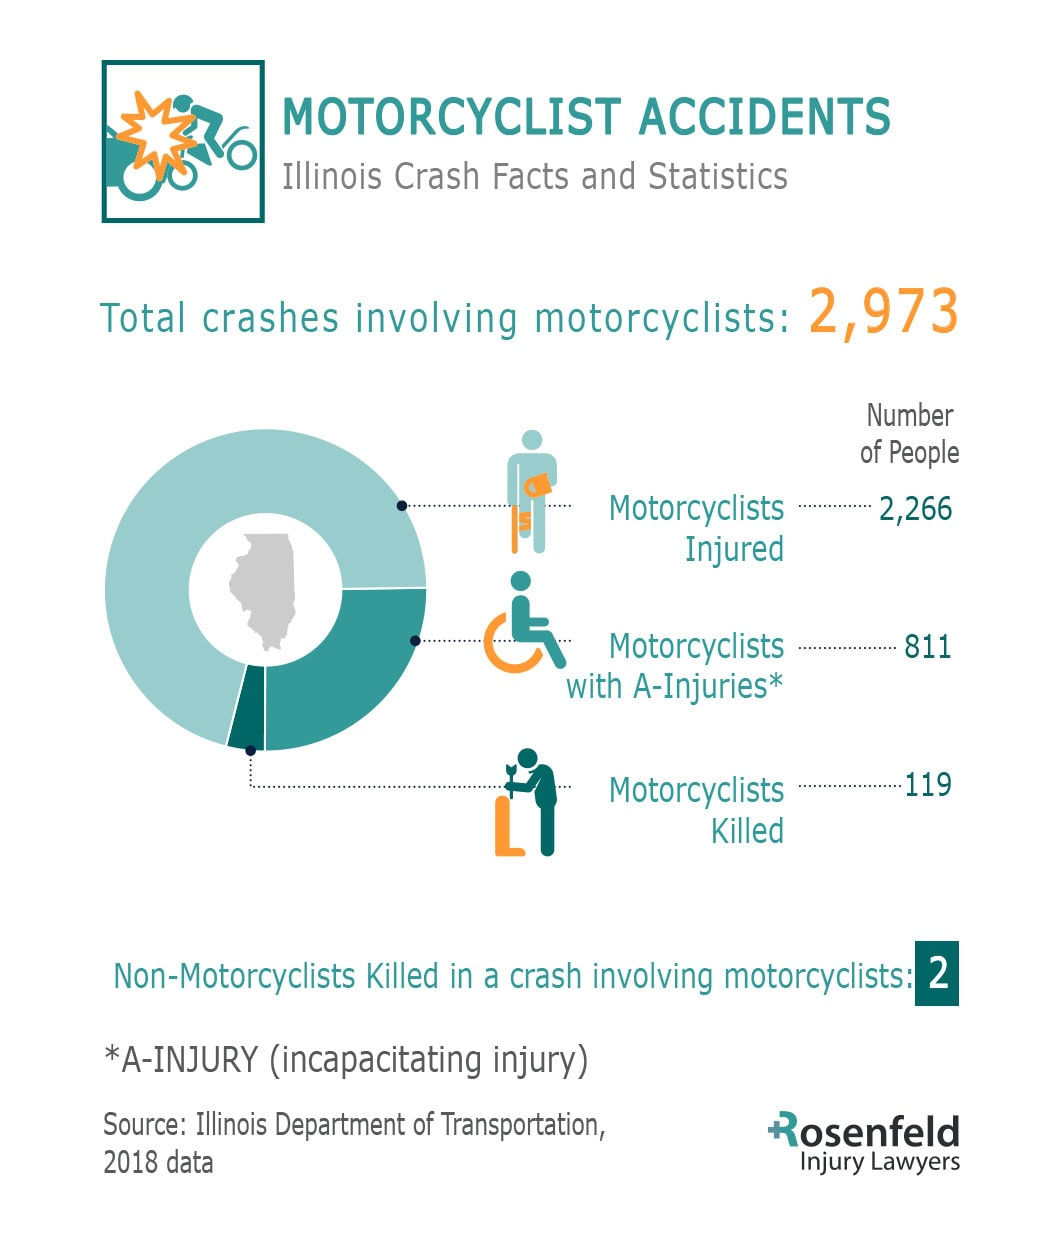 Chicago Motorcycle Accident Lawyer Share Crash Injury Death Statistics Illinois